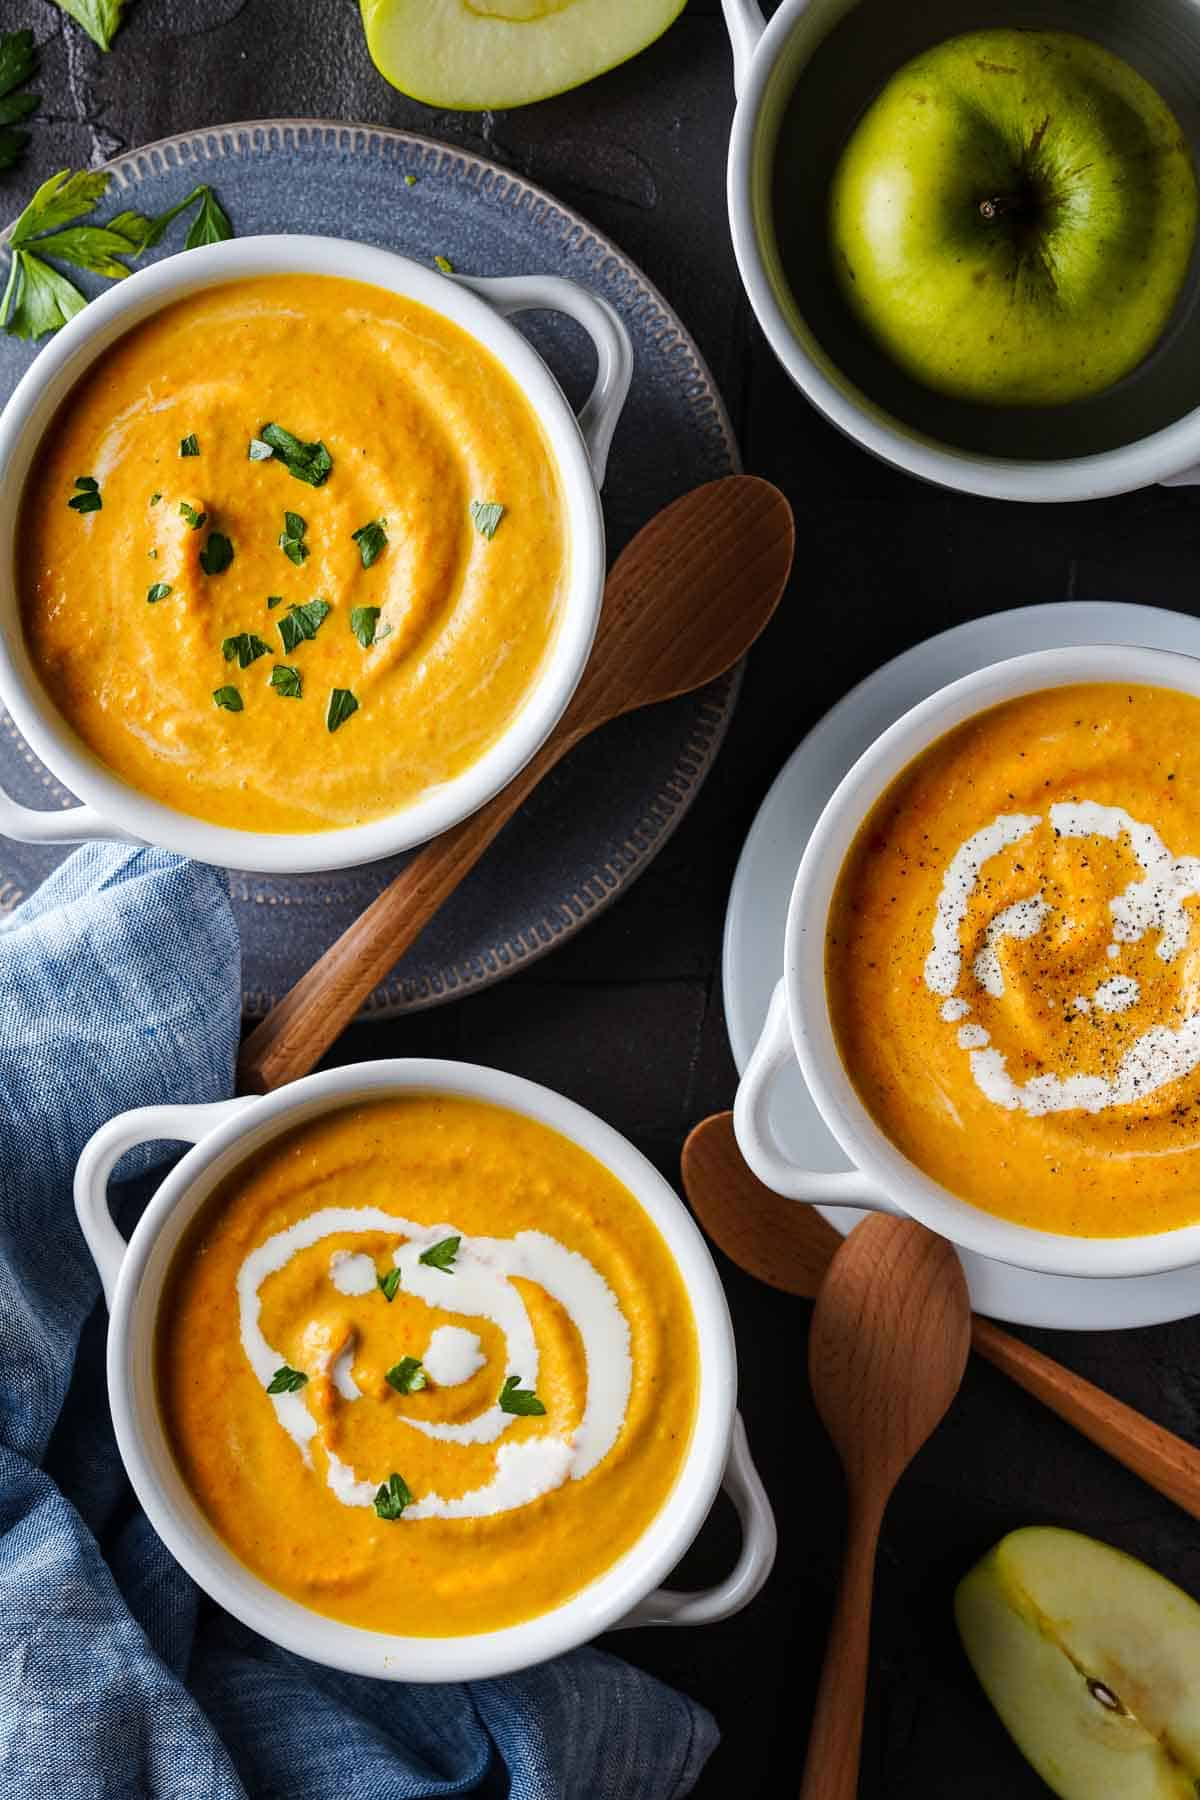 Carrot pumpkin apple soup in three bowls with wooden spoons